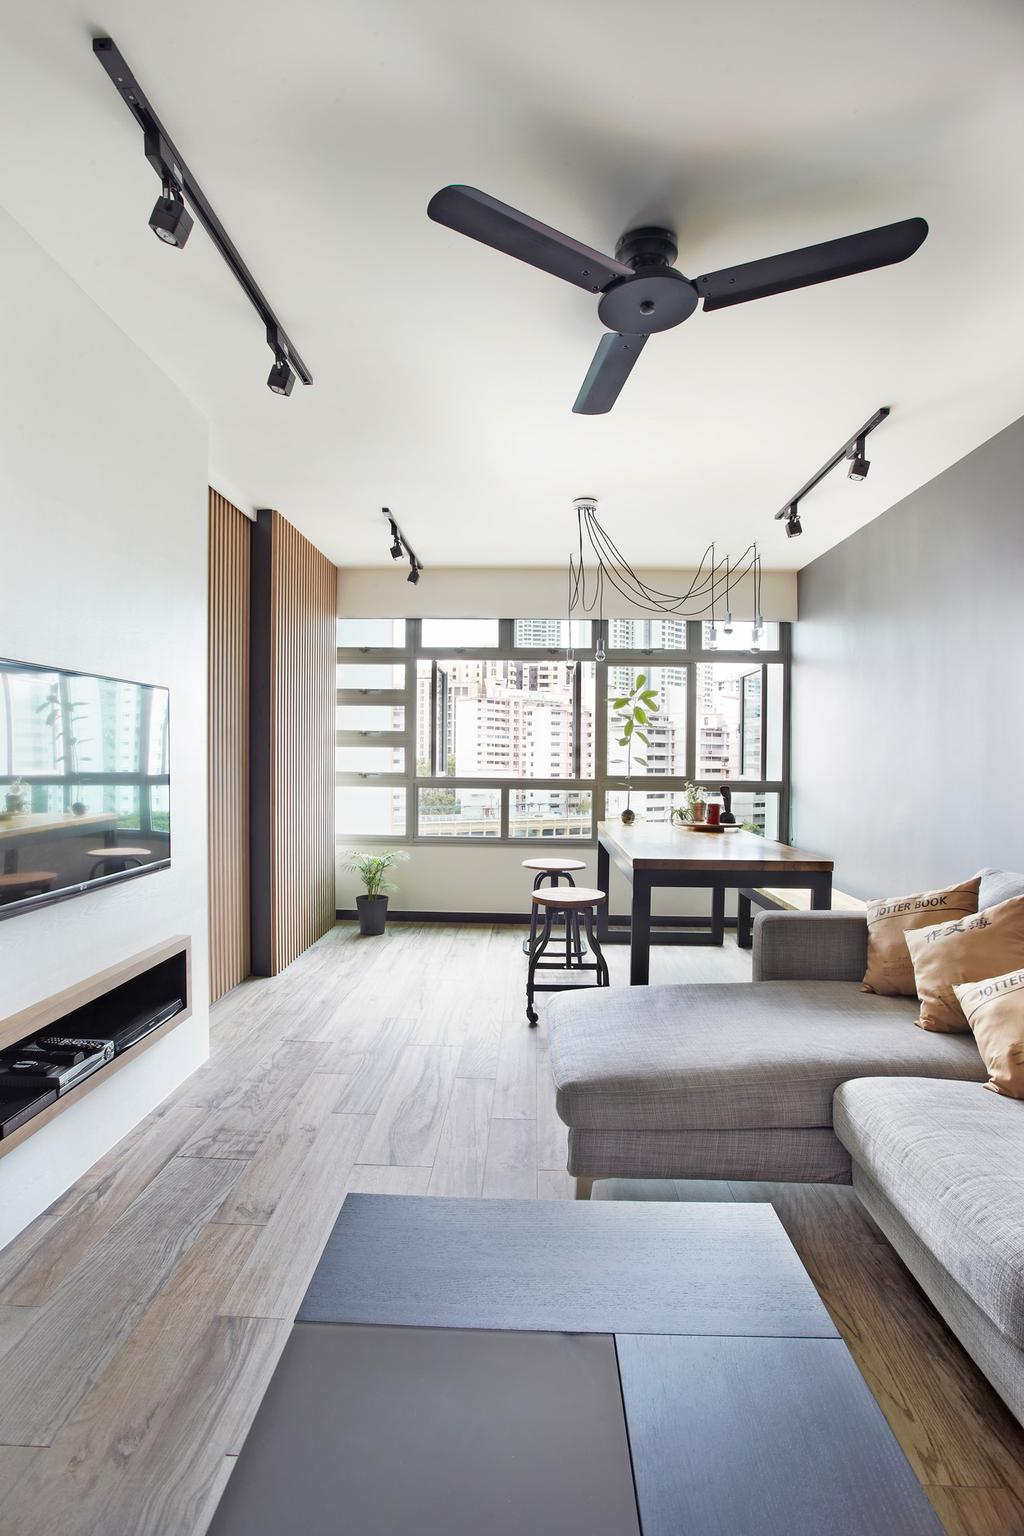 Scandinavian, HDB, Living Room, Ghim Moh Link, Interior Designer, Free Space Intent, Parquet Flooring, Wooden Flooring, Hanging Light, Trackie, Black Track Light, Dining Table, Furniture, Table, Indoors, Interior Design, Couch